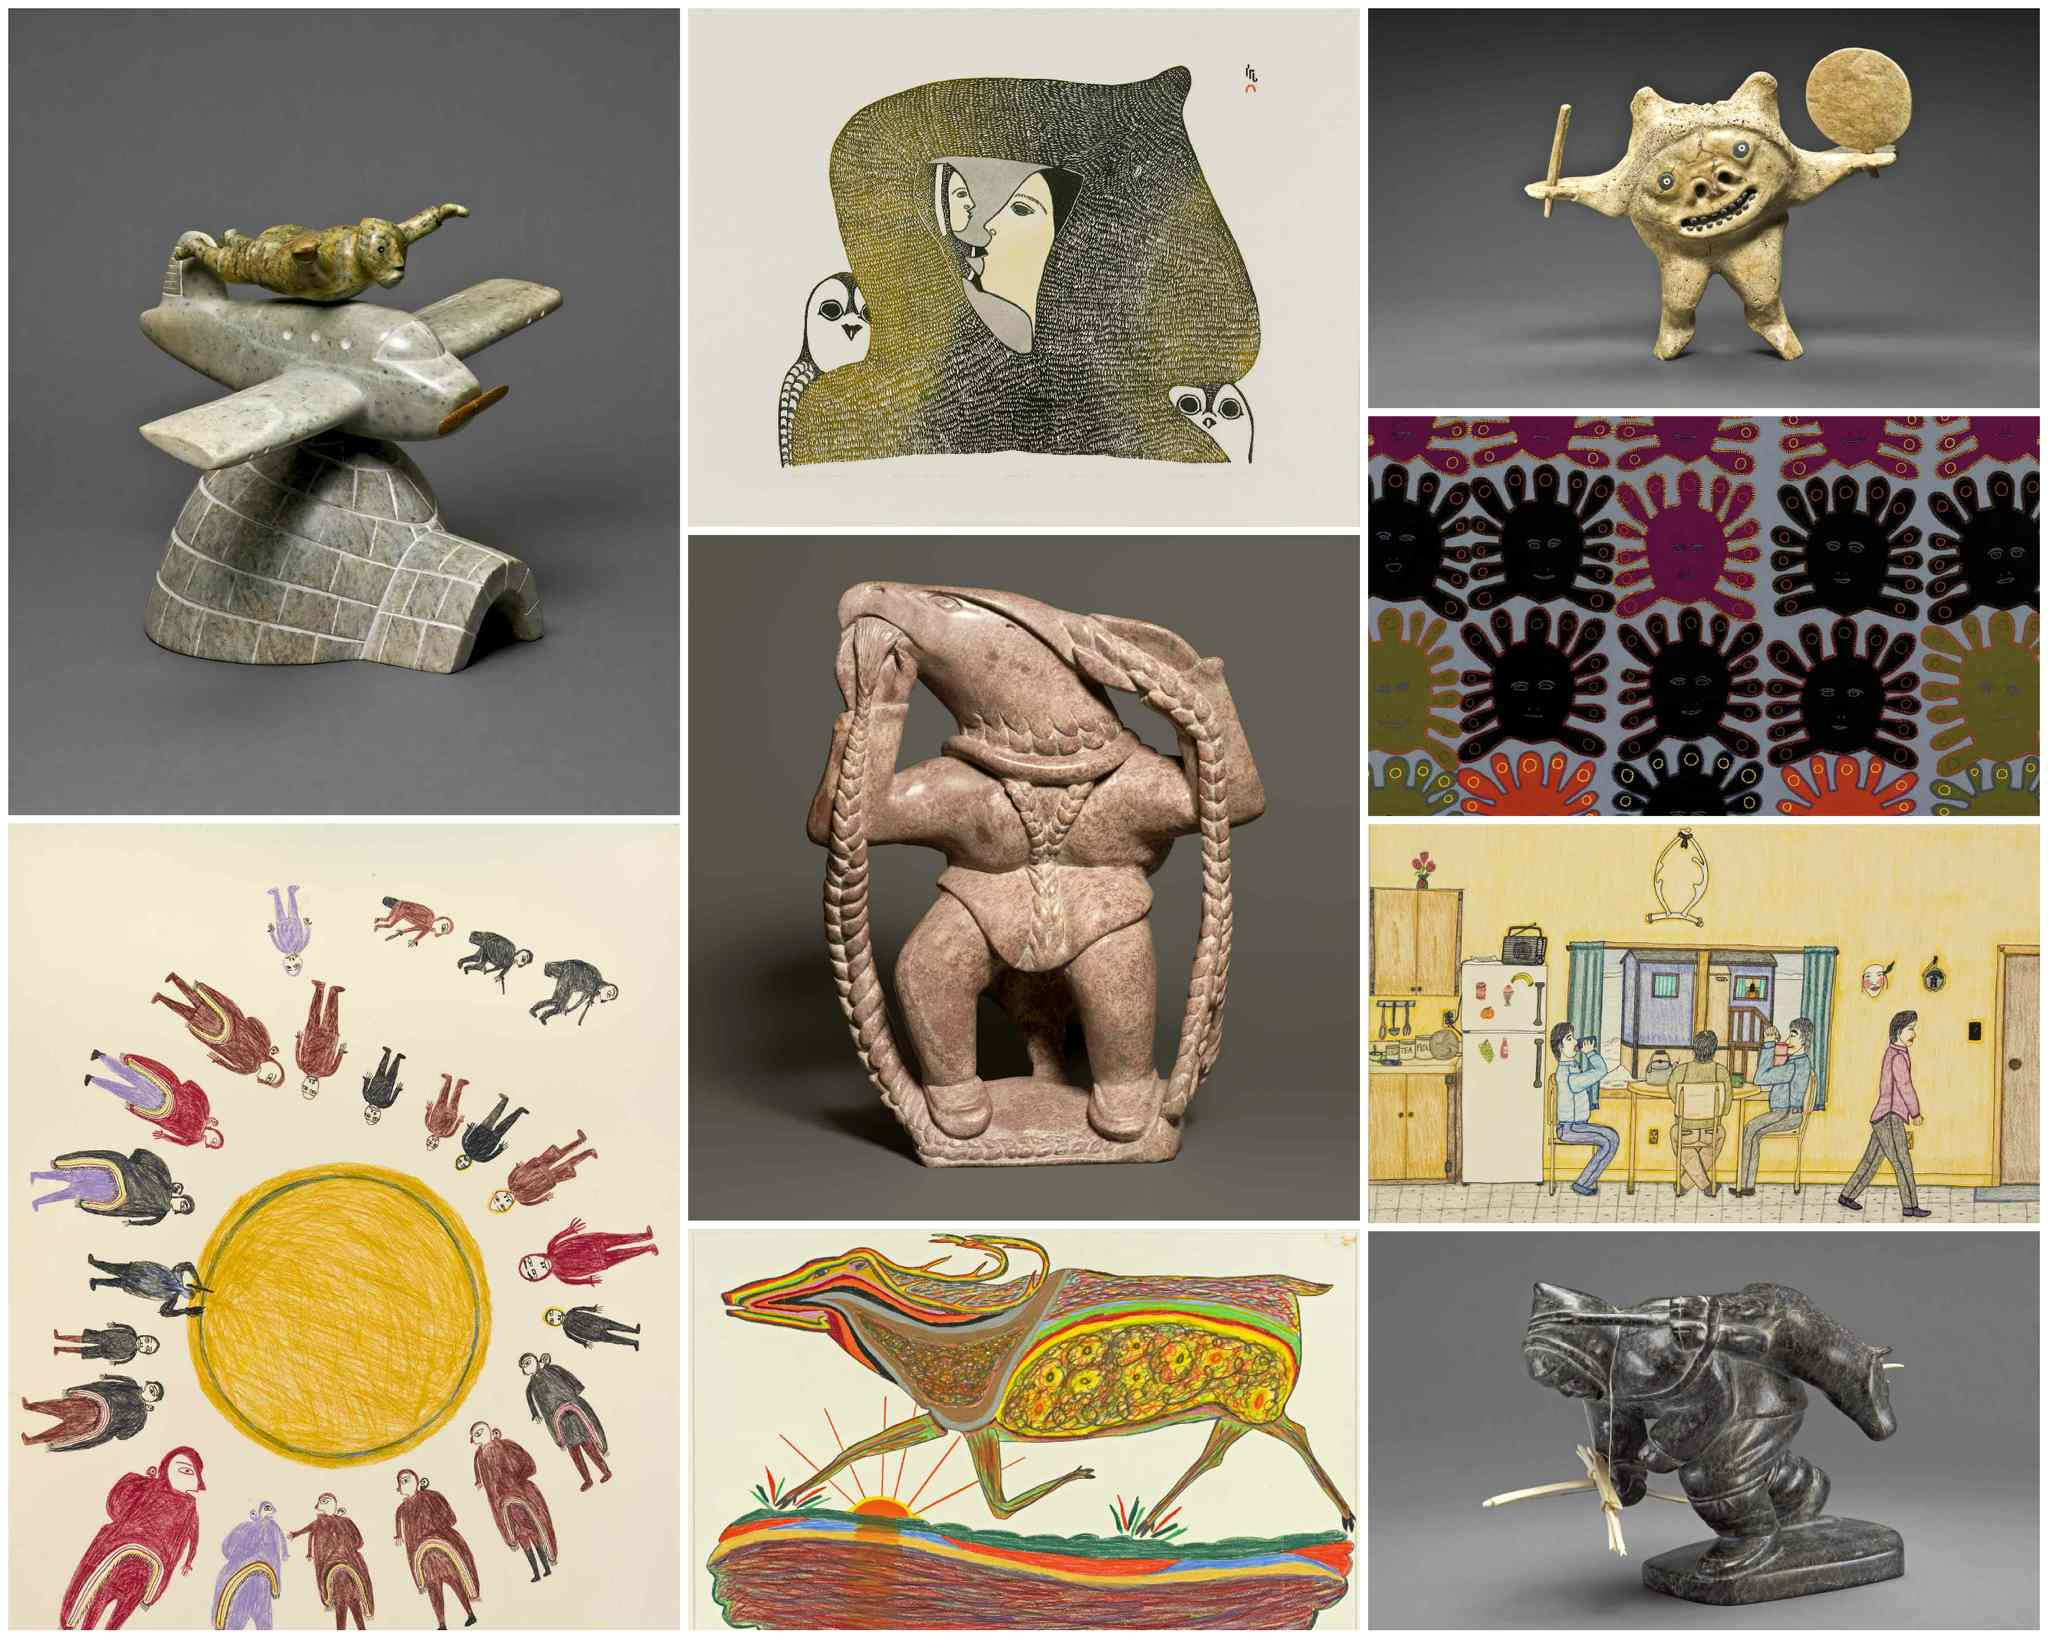 From the collection of the Winnipeg Art Gallery (clockwise from top left): <I>Airplane</i> by David Ruben Piqtoukun (1995), <I>Arctic Madonna</i> by Pitaloosie Saila, printmaker Simigak Simeonie (1980), <i>Double Shaman Drum Dancer</i> by Nelson Takkiruq (1989), detail of </I>Thirty Faces</i> by Marion Tuu'luq (1974), <I>Tea Drinkers</i> by Annie Pootoogook (2001-02), <i>Man Carrying a Caribou</i> by Charlie Sivuarapik (1954), <i>The Great Male Caribou</i> by William Noah (1971), <i>Drum Dance</i> by Luke Anguhadluq (1970), and in the centre <i>Natturalik</i> by Kiugak Ashoona (2007).